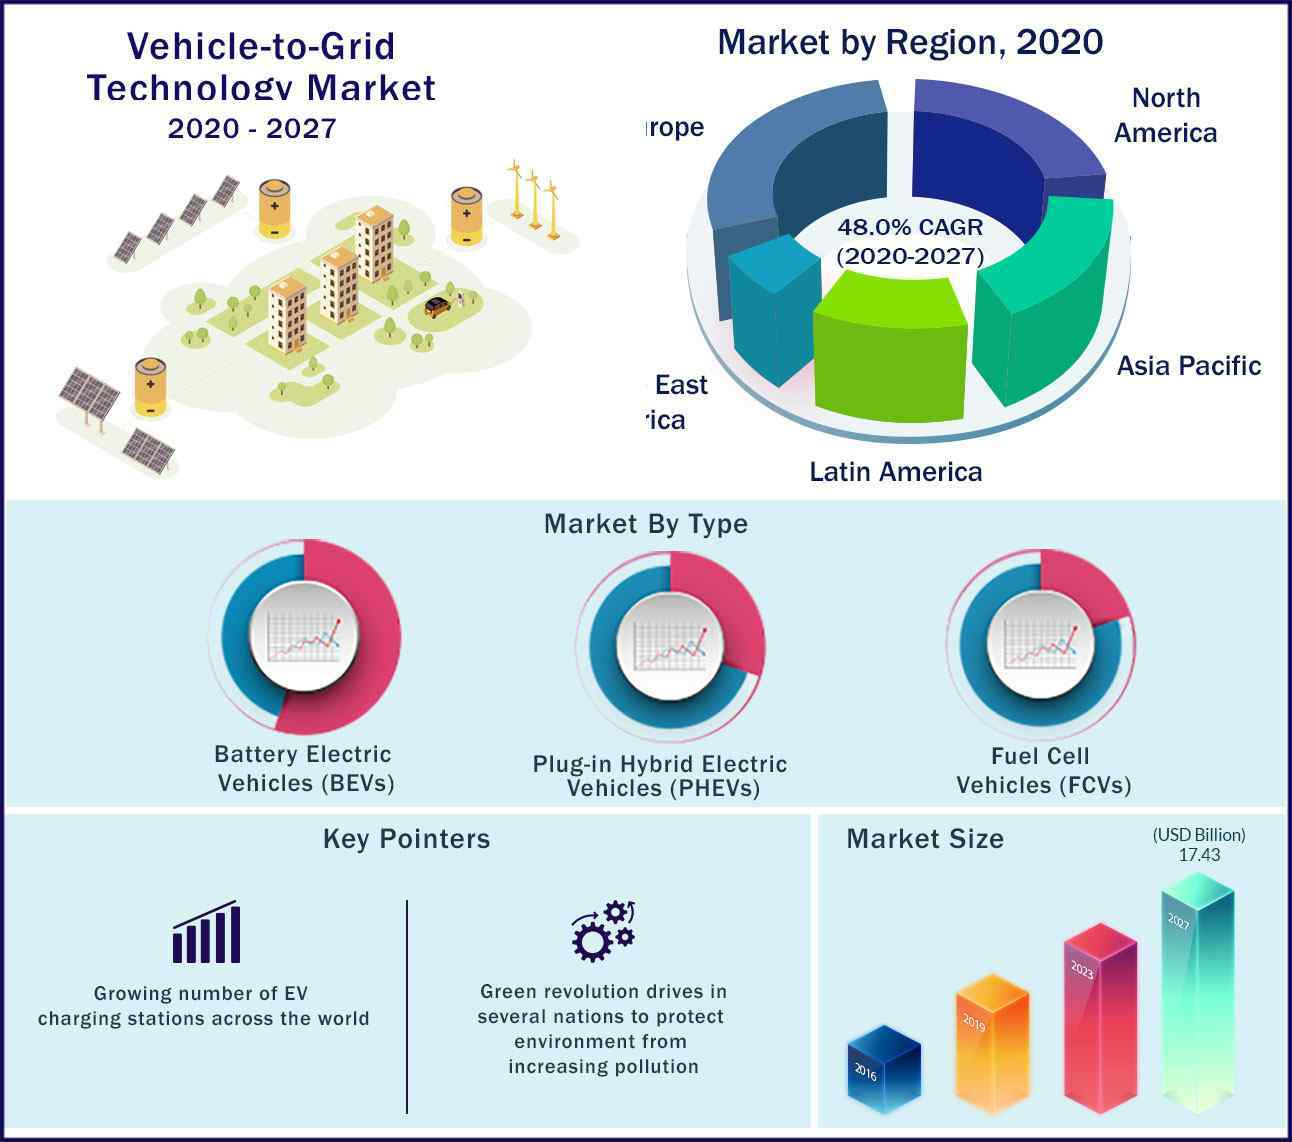 Global Vehicle to Grid Technology Market 2020-2027